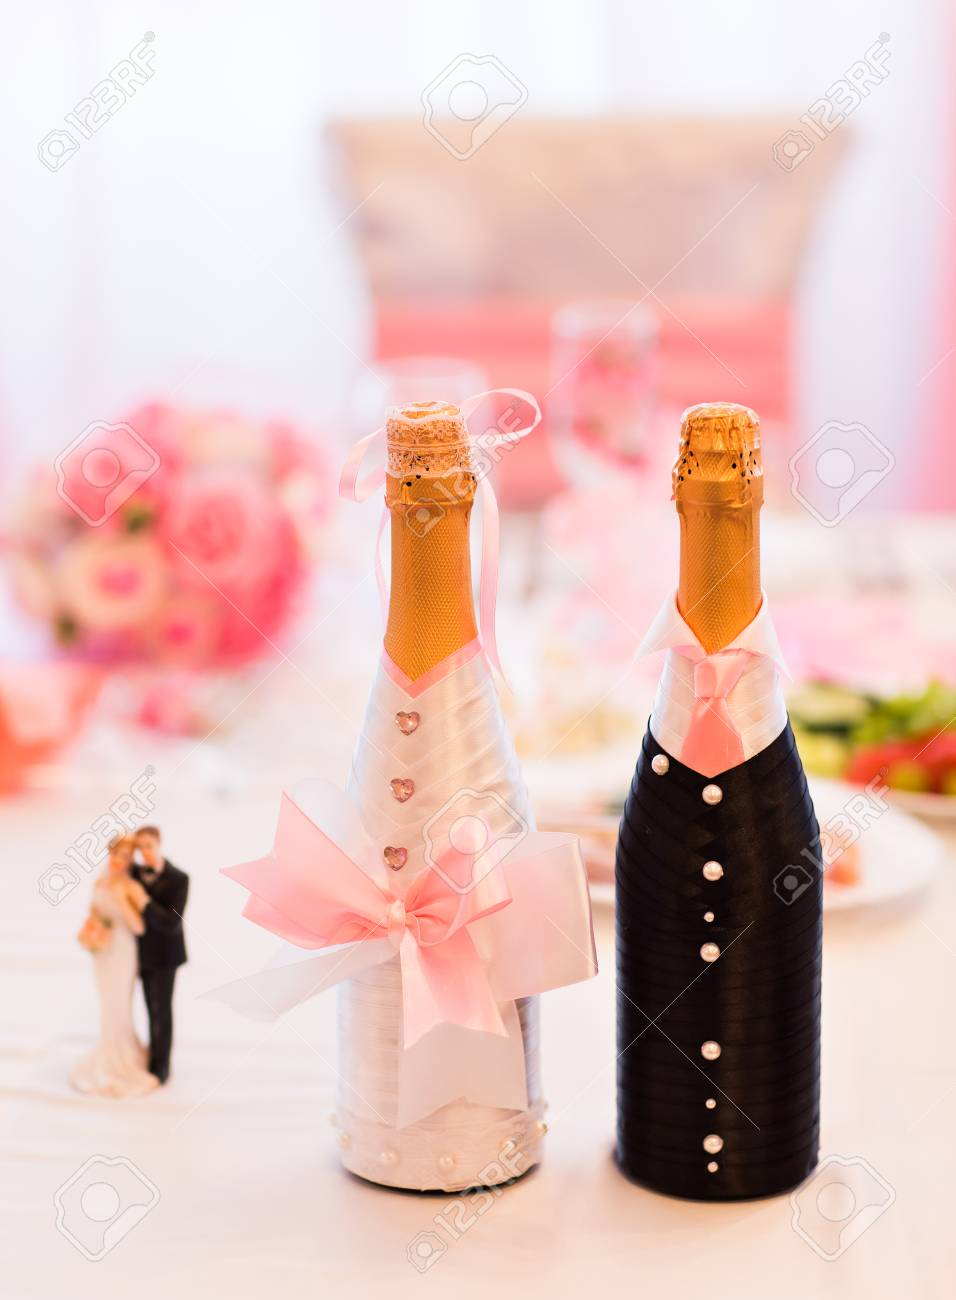 Champagne Bottles Decoration For Wedding Day. Wedding Decor Stock ...